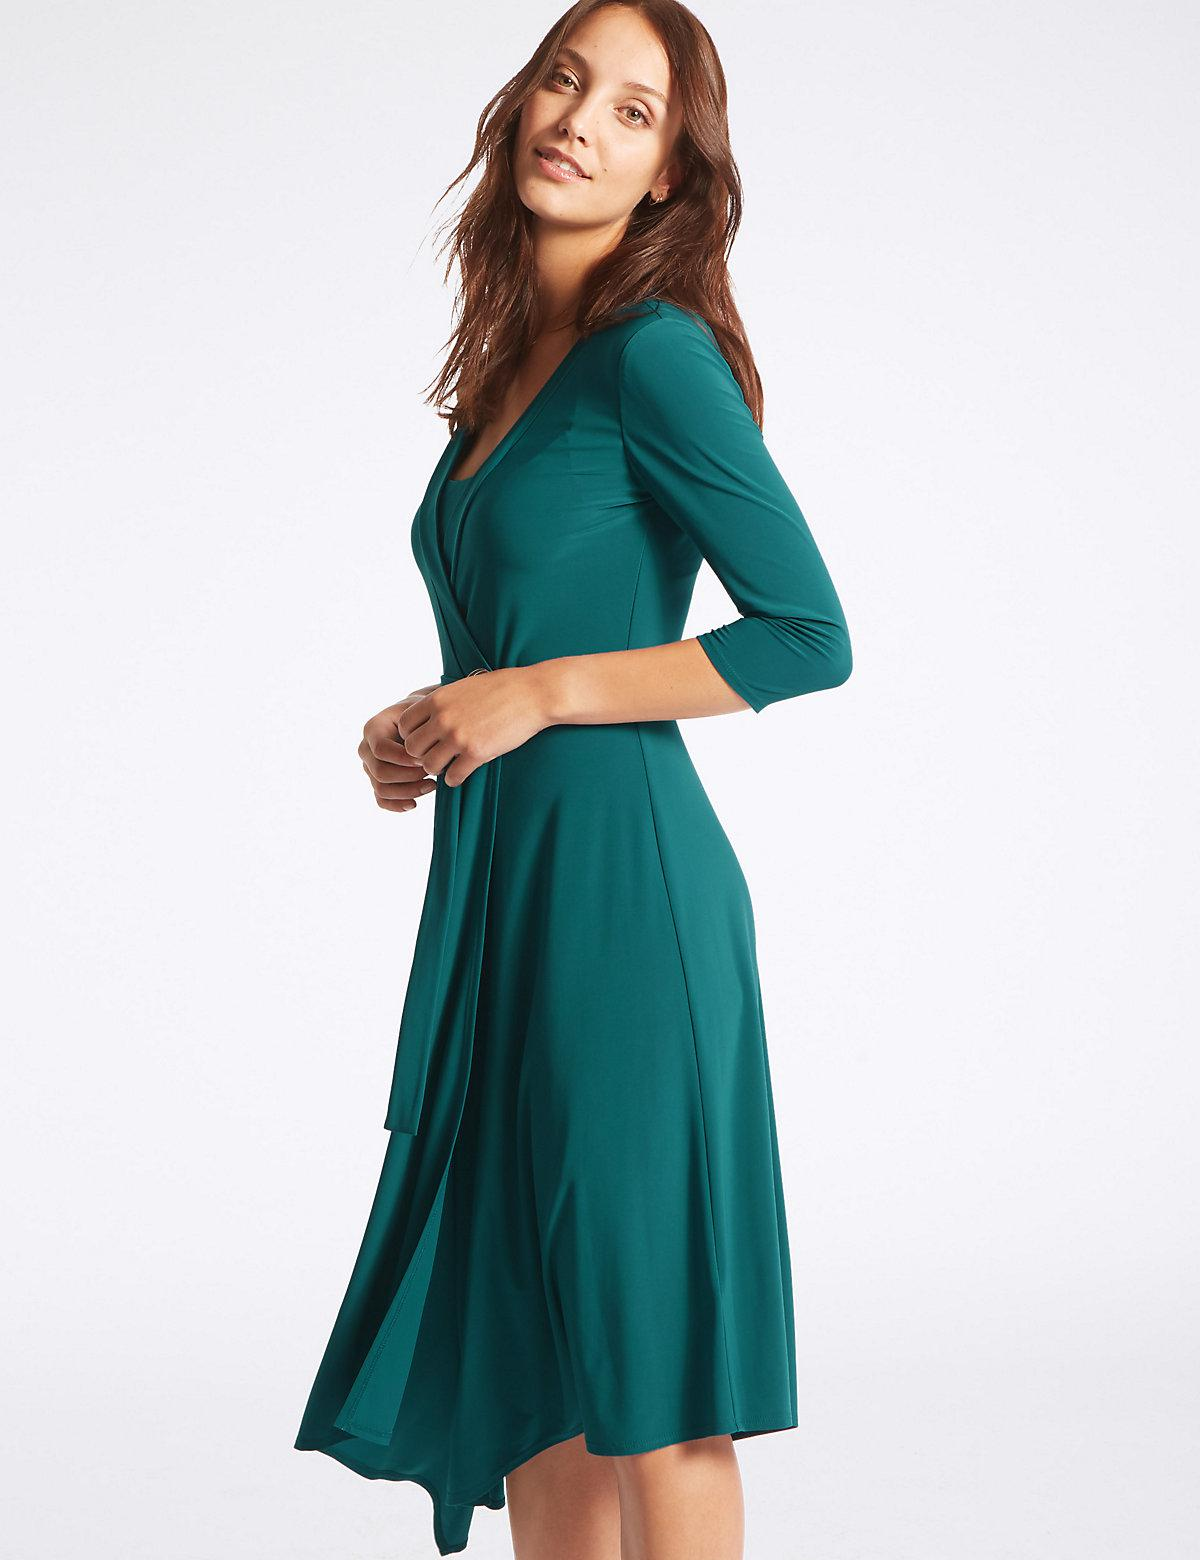 Awesome Marks And Spencer Dresses For Weddings Elaboration - All ...